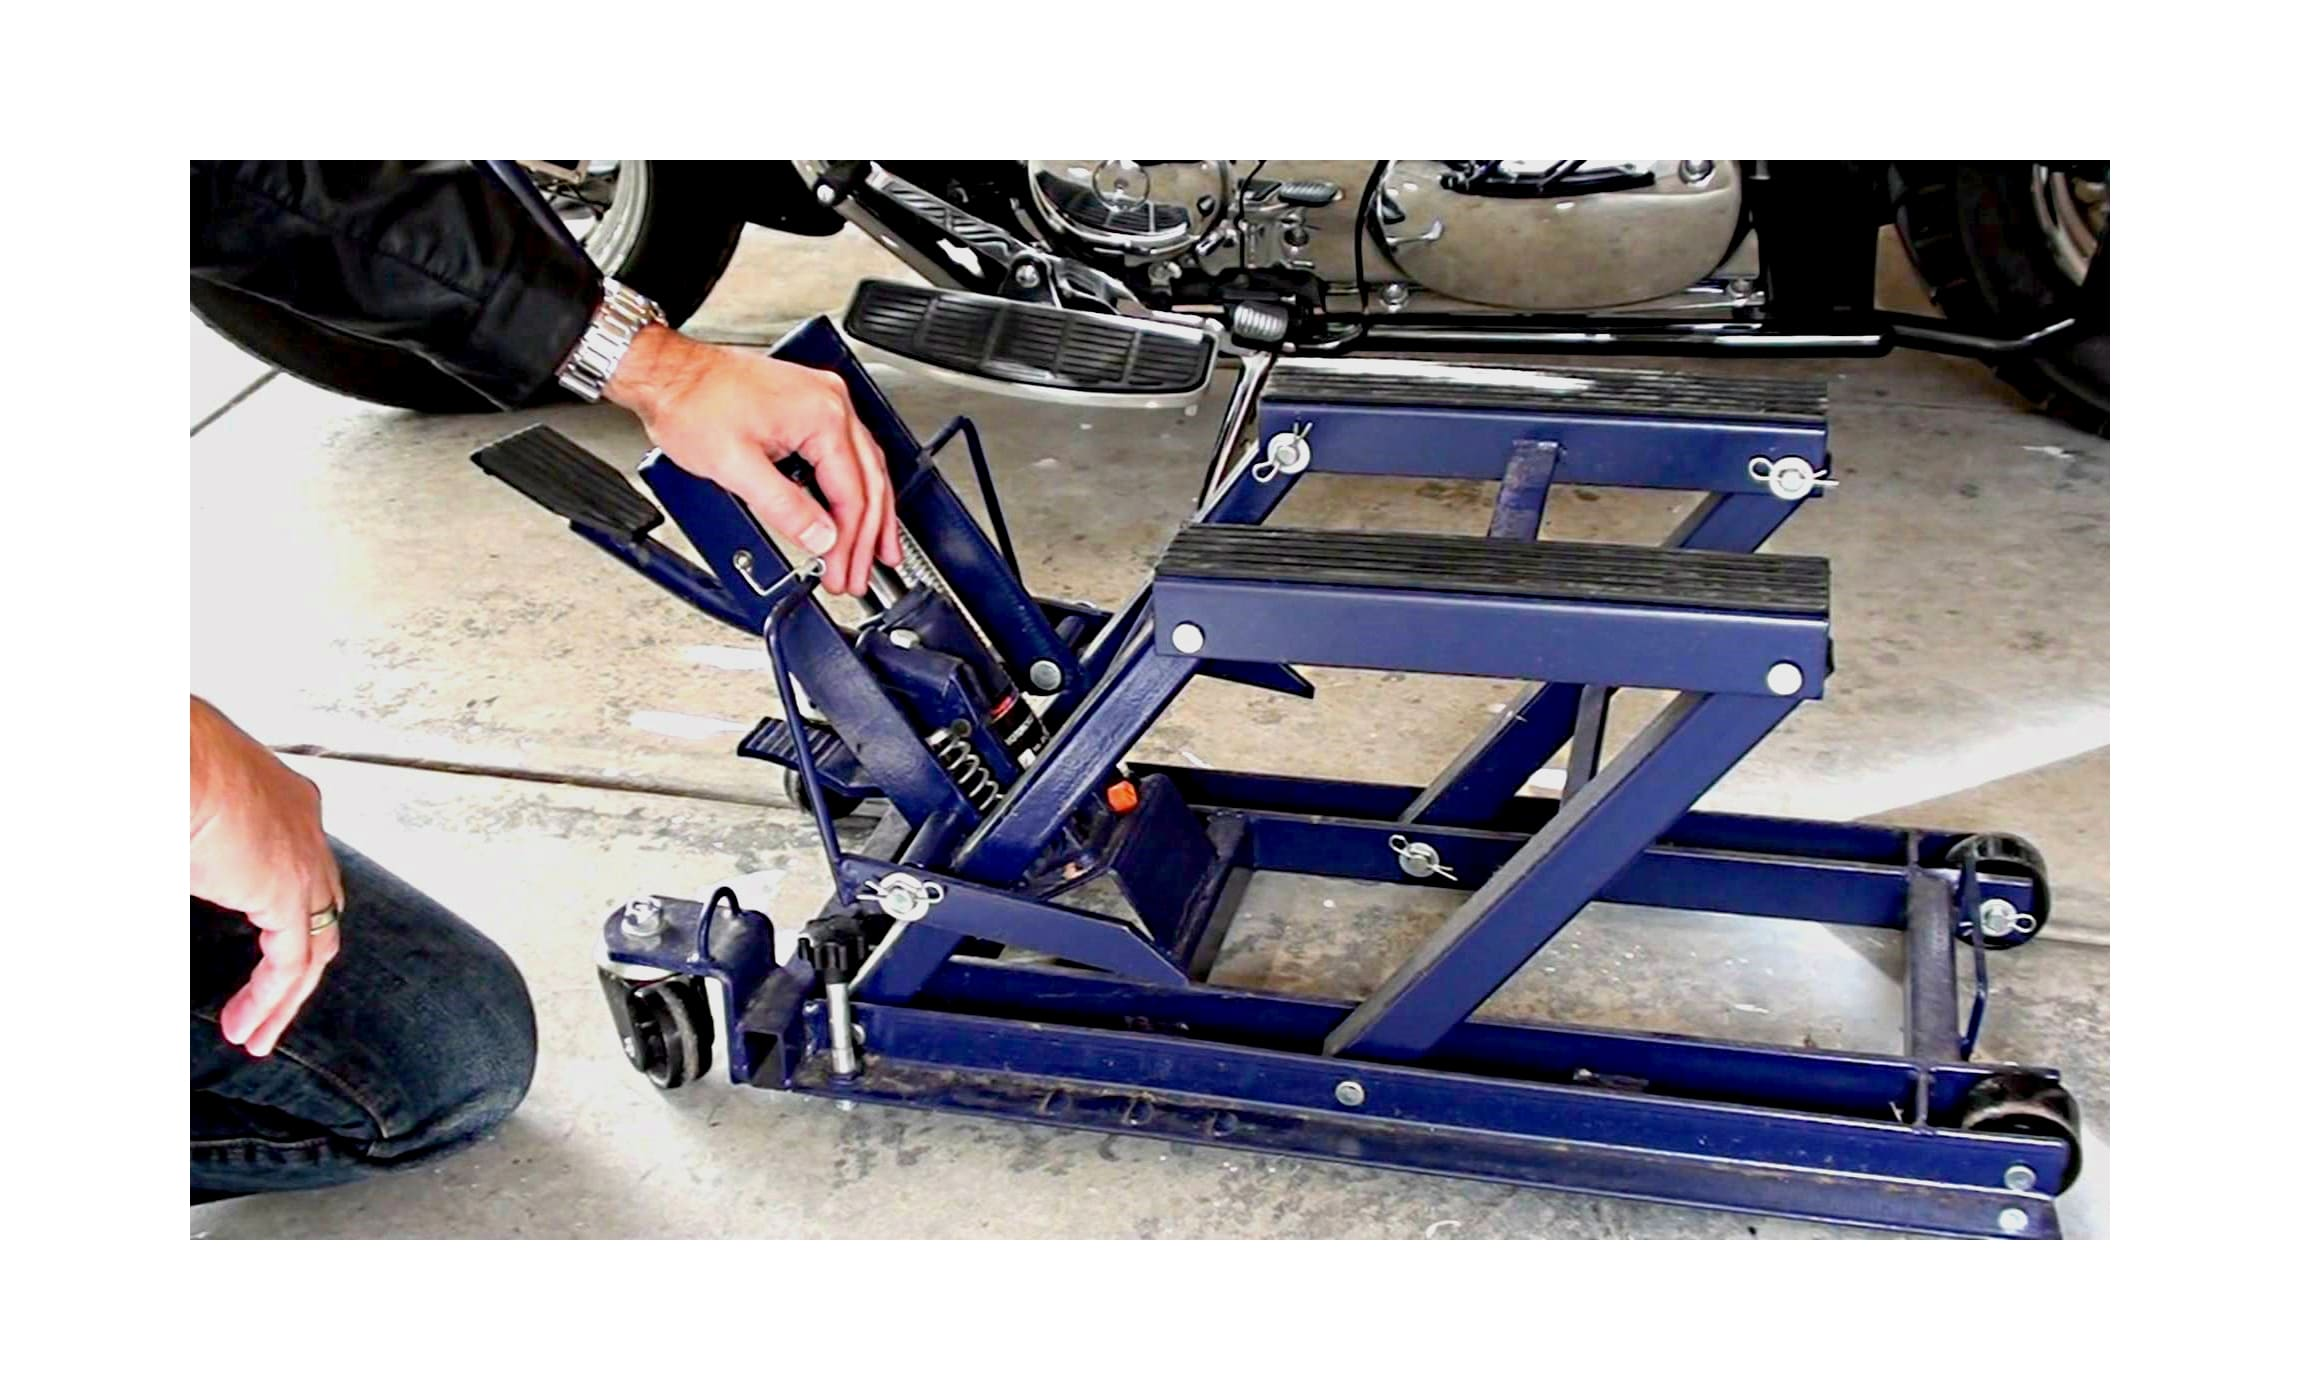 12 Best Motorcycle Jacks Lifts Stands Must Read Reviews For September 2020